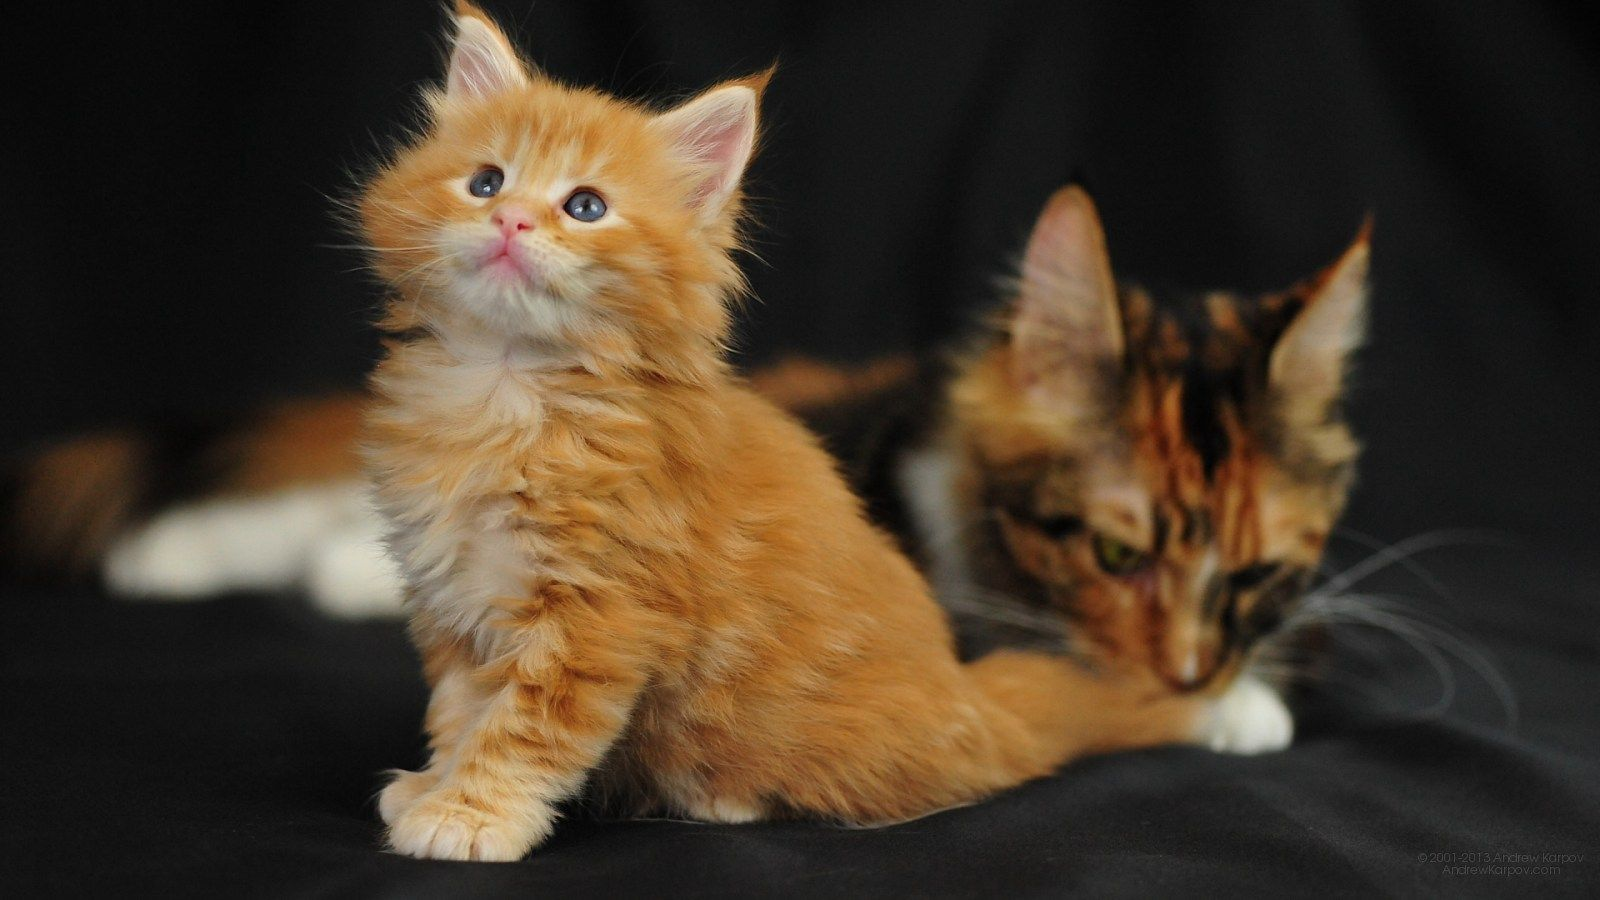 All About Tuxedo Cats Cats, Ginger cats, Cat facts